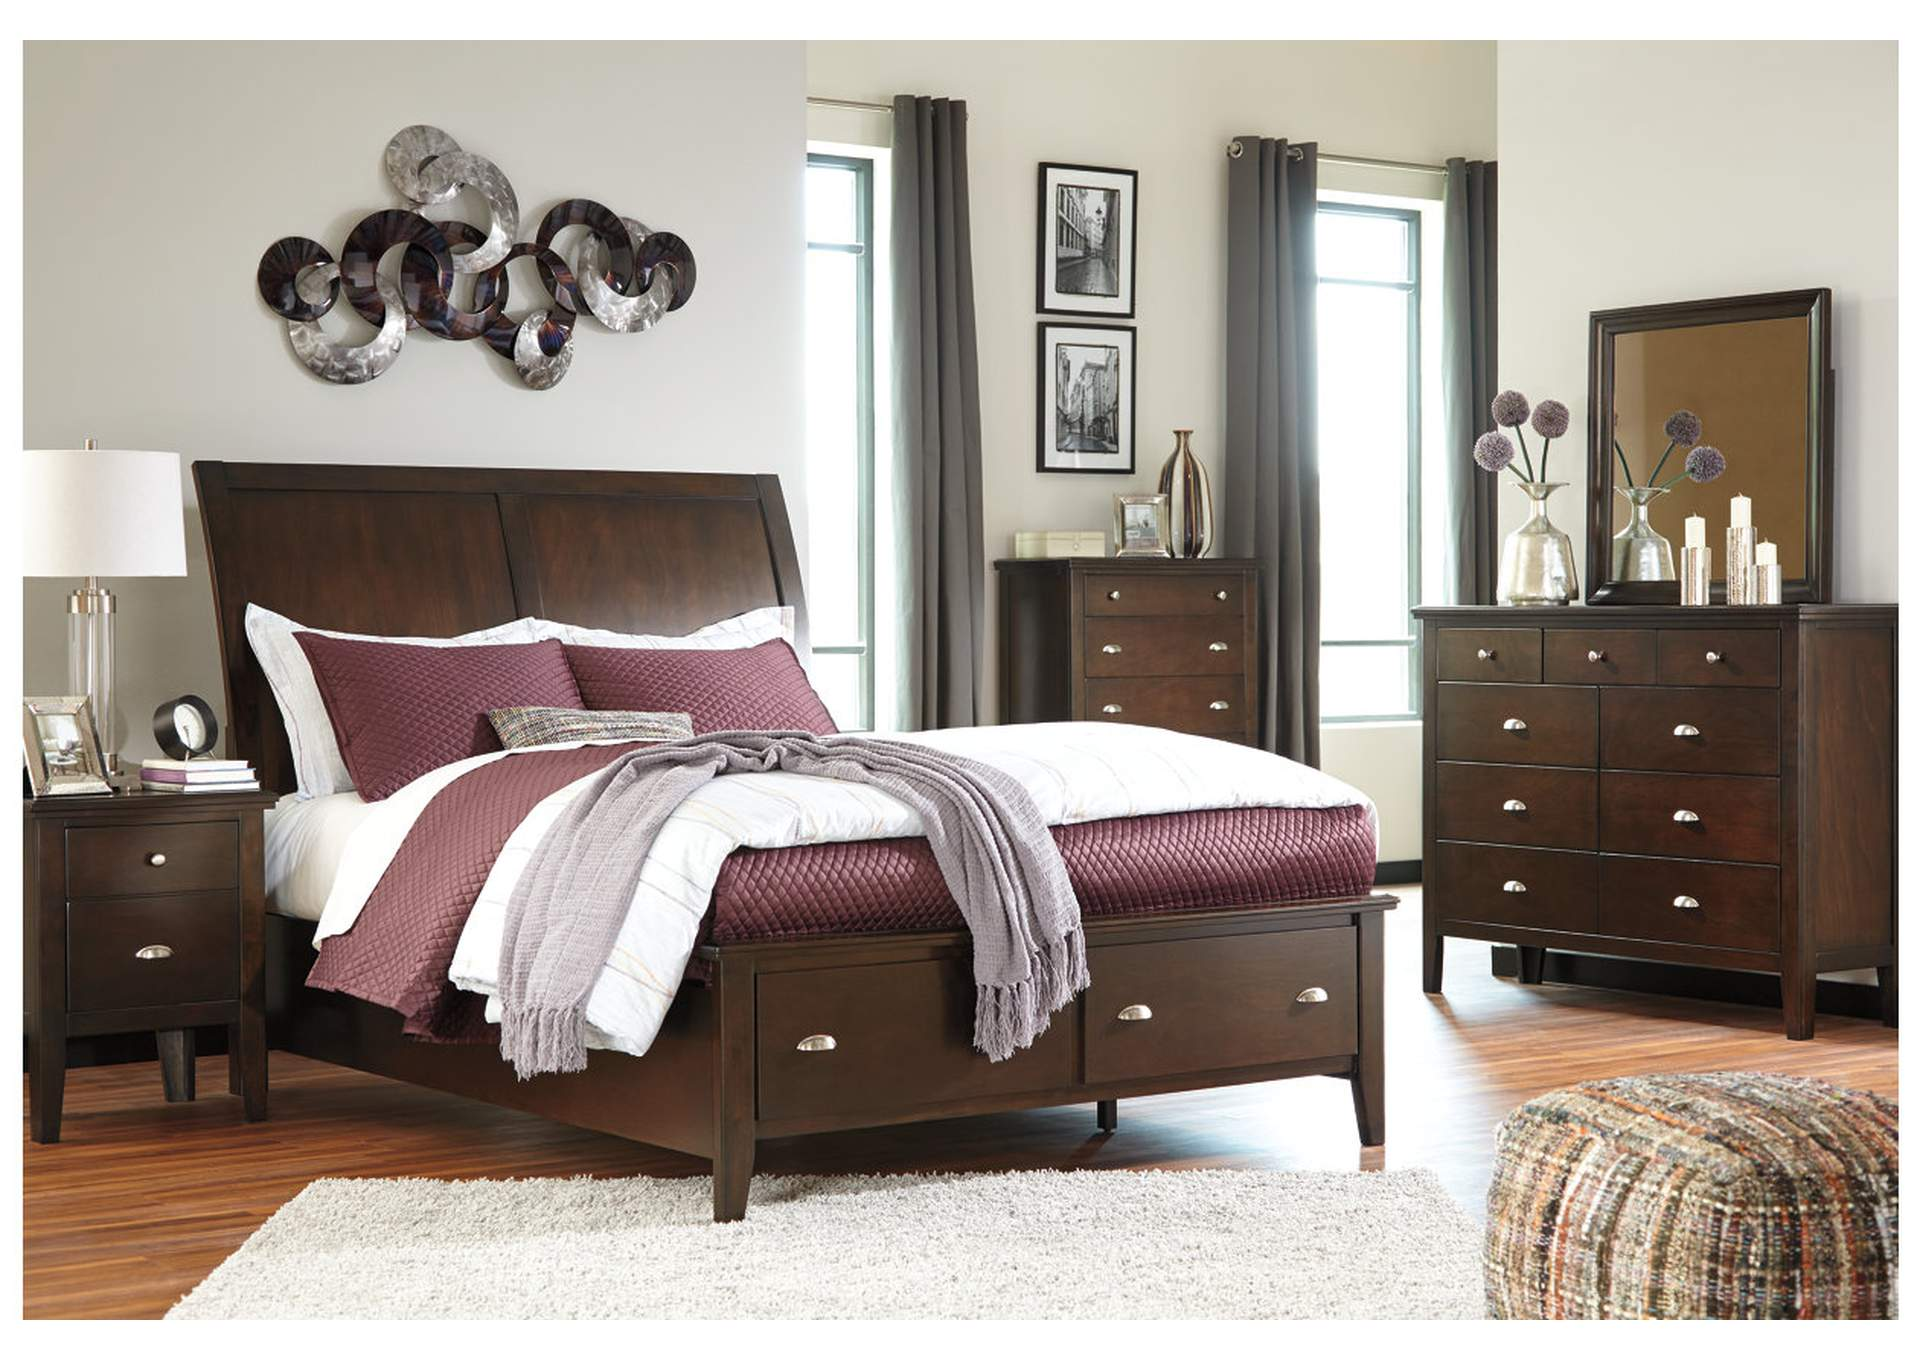 Evanburg Brown King Sleigh Storage Bed w/Dresser, Mirror, Drawer Chest & Nightstand,Signature Design By Ashley